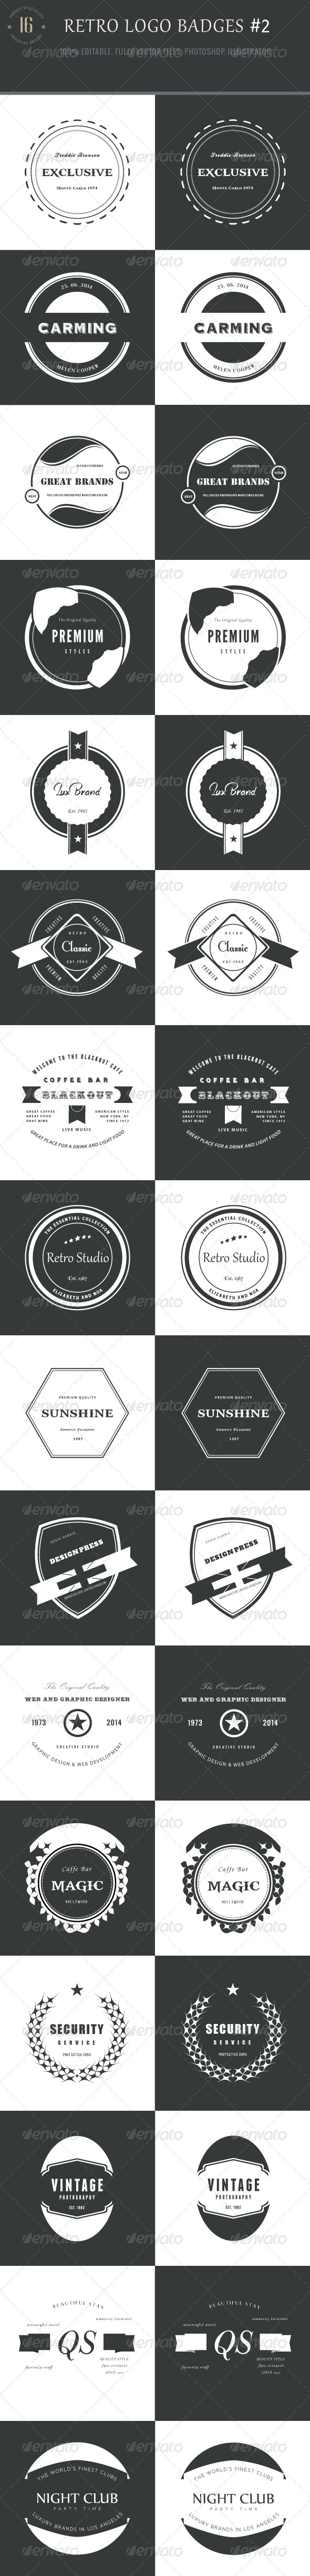 GraphicRiver 16 Retro Logo Badges #2 8766058